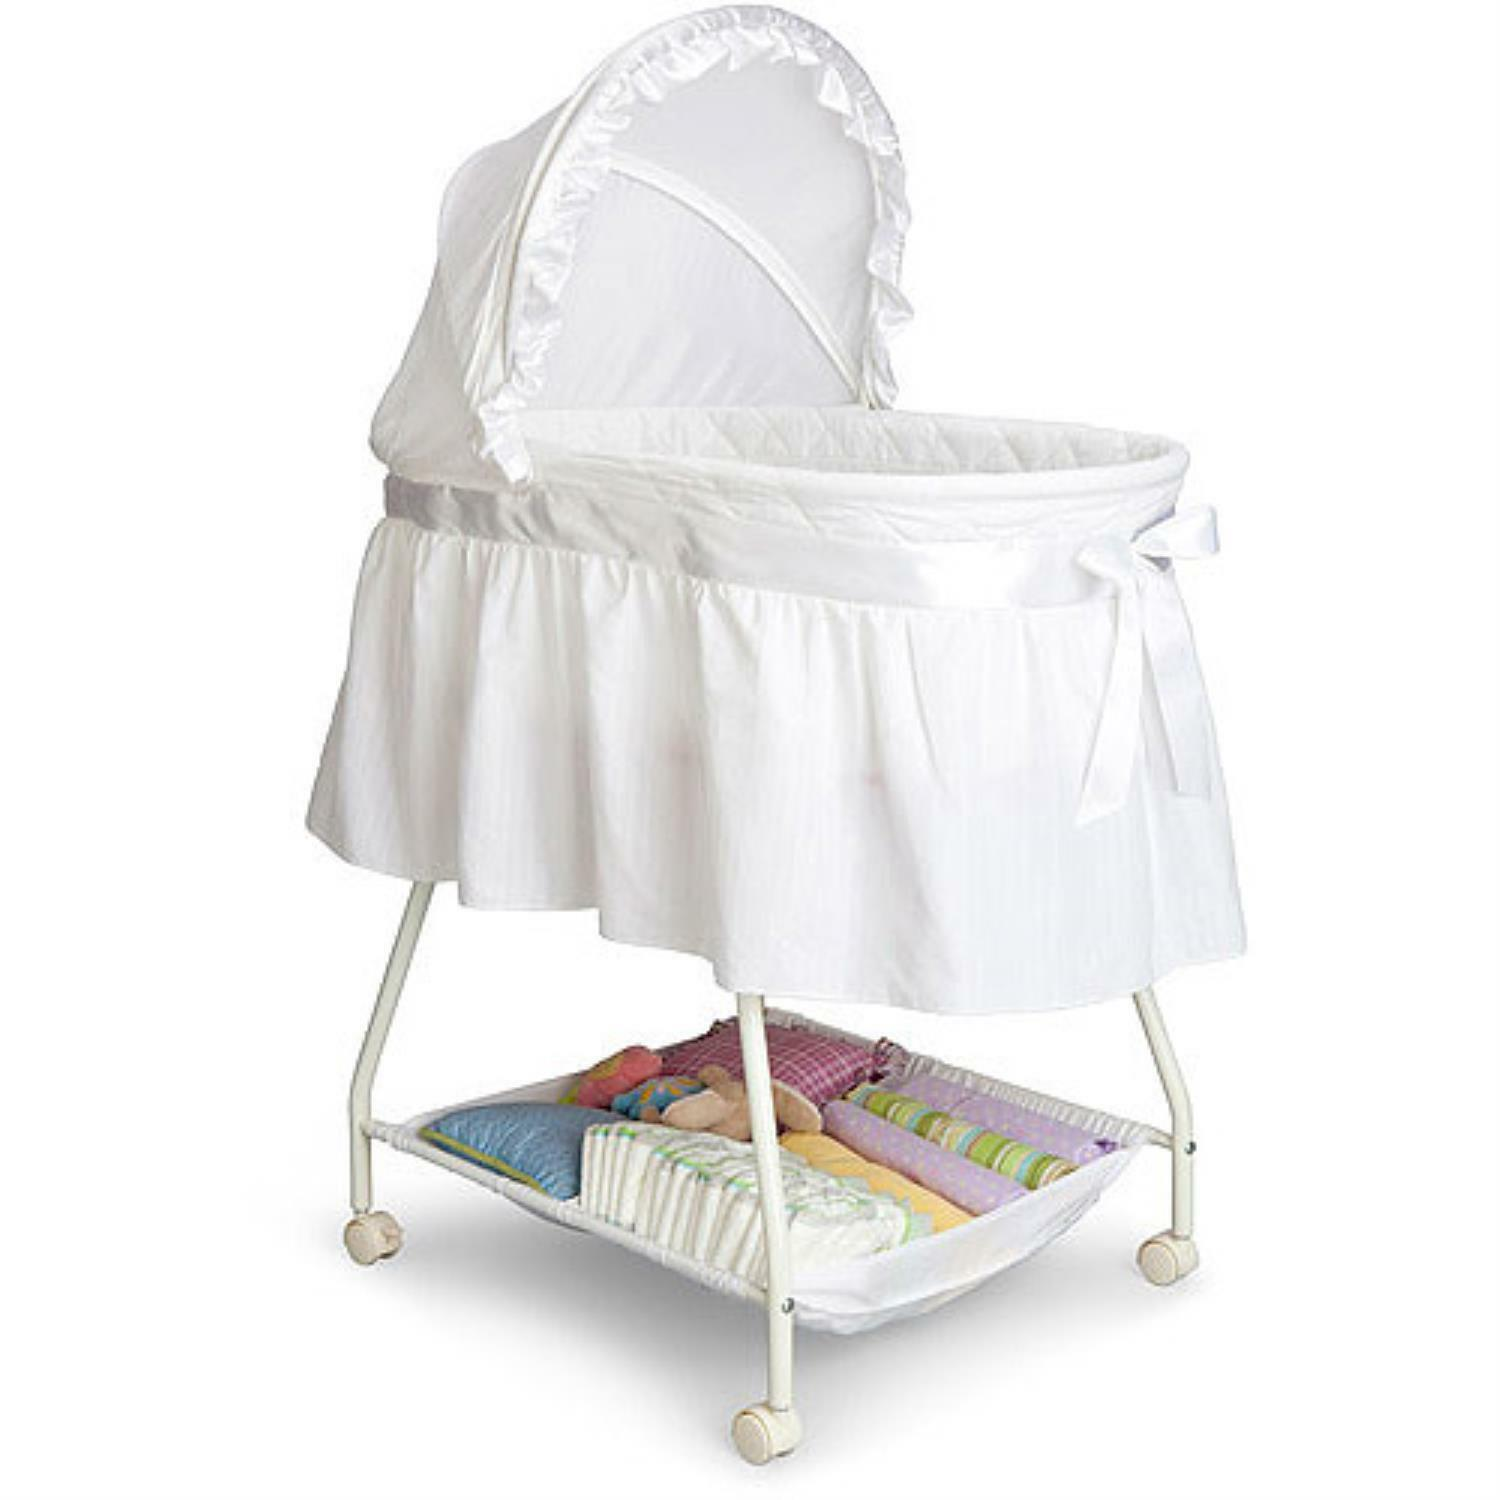 The Of Available Baby Bassinet Baby Infant Cradle Newborn Crib Wheels Portable Bassinets Cradles Baby Bassinets Cradles houzz-02 Bassinets And Cradles